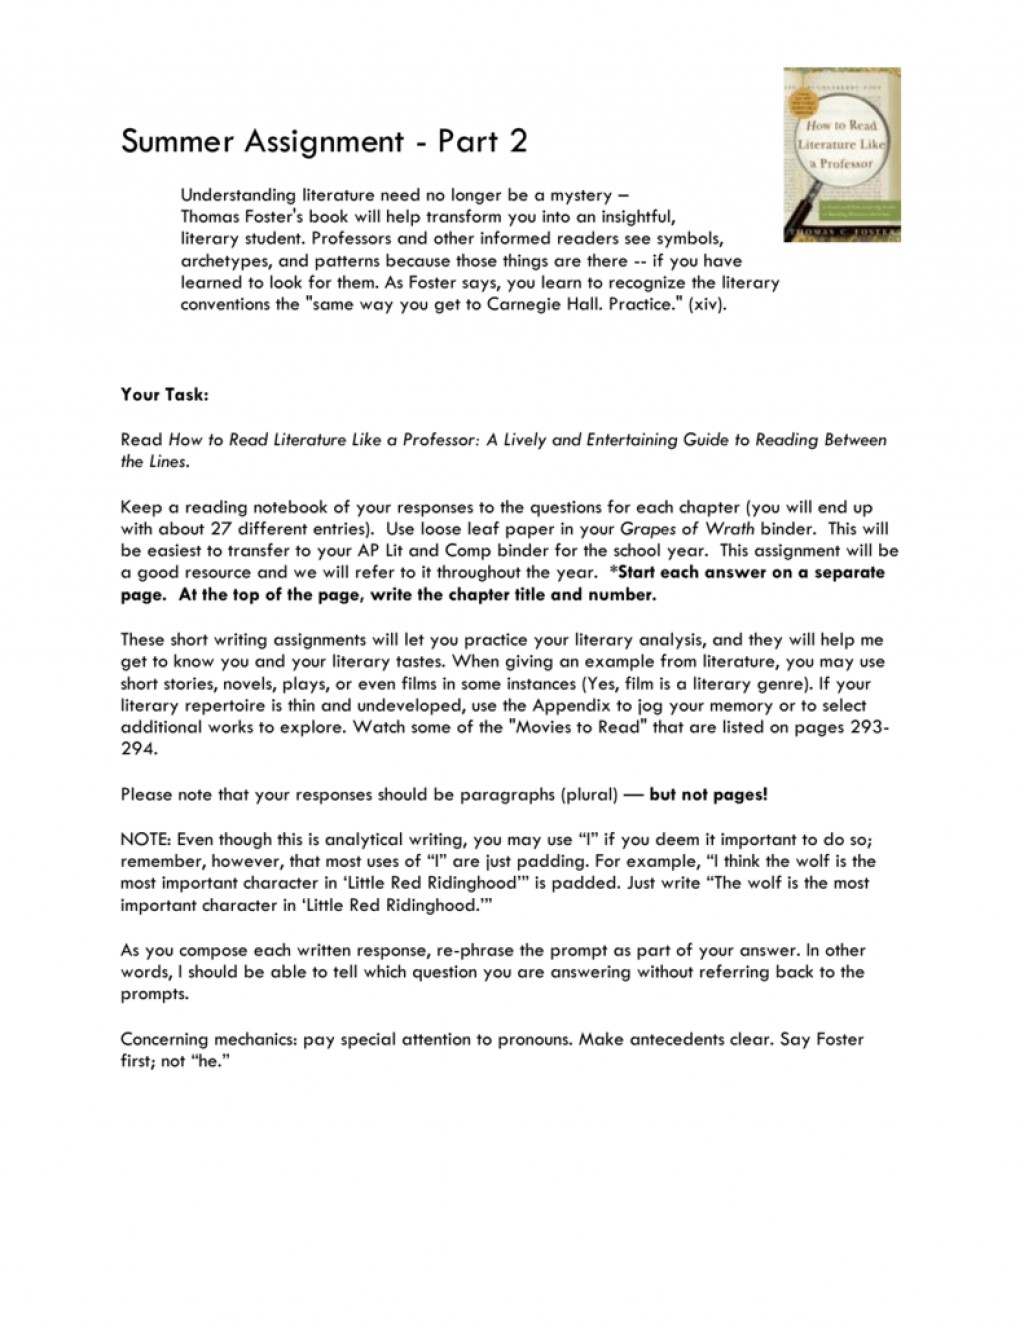 006 Essay Example Professor How To Read Lit Like 008059138 1 Amazing Teaching College Writing On My In French Large